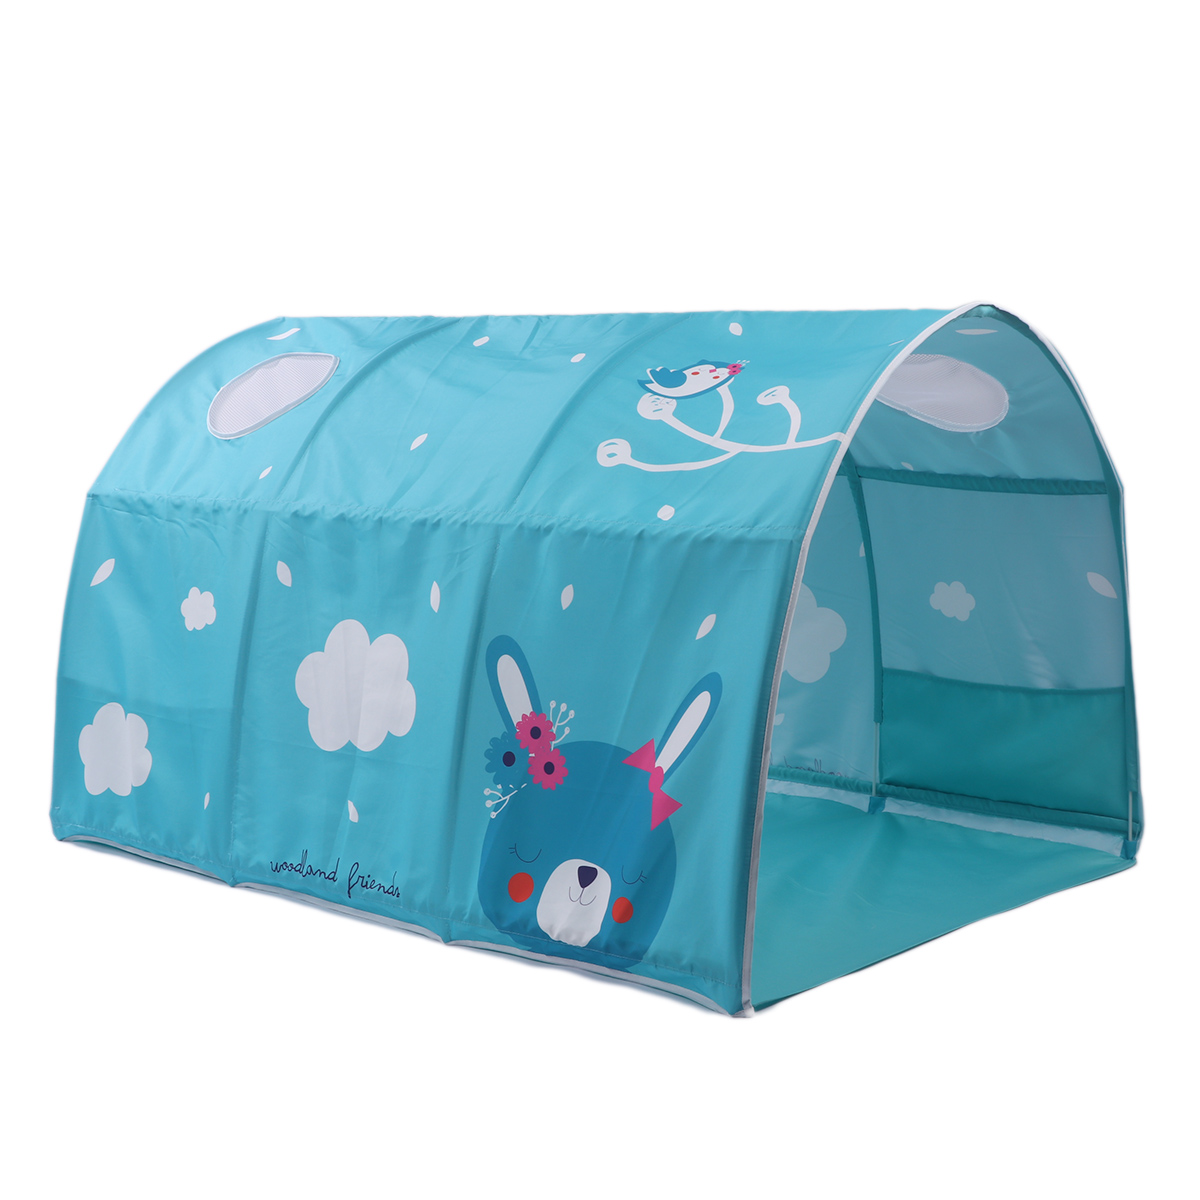 Bed Canopy Dream Kid Tent Playhouse Privacy Space Sleeping